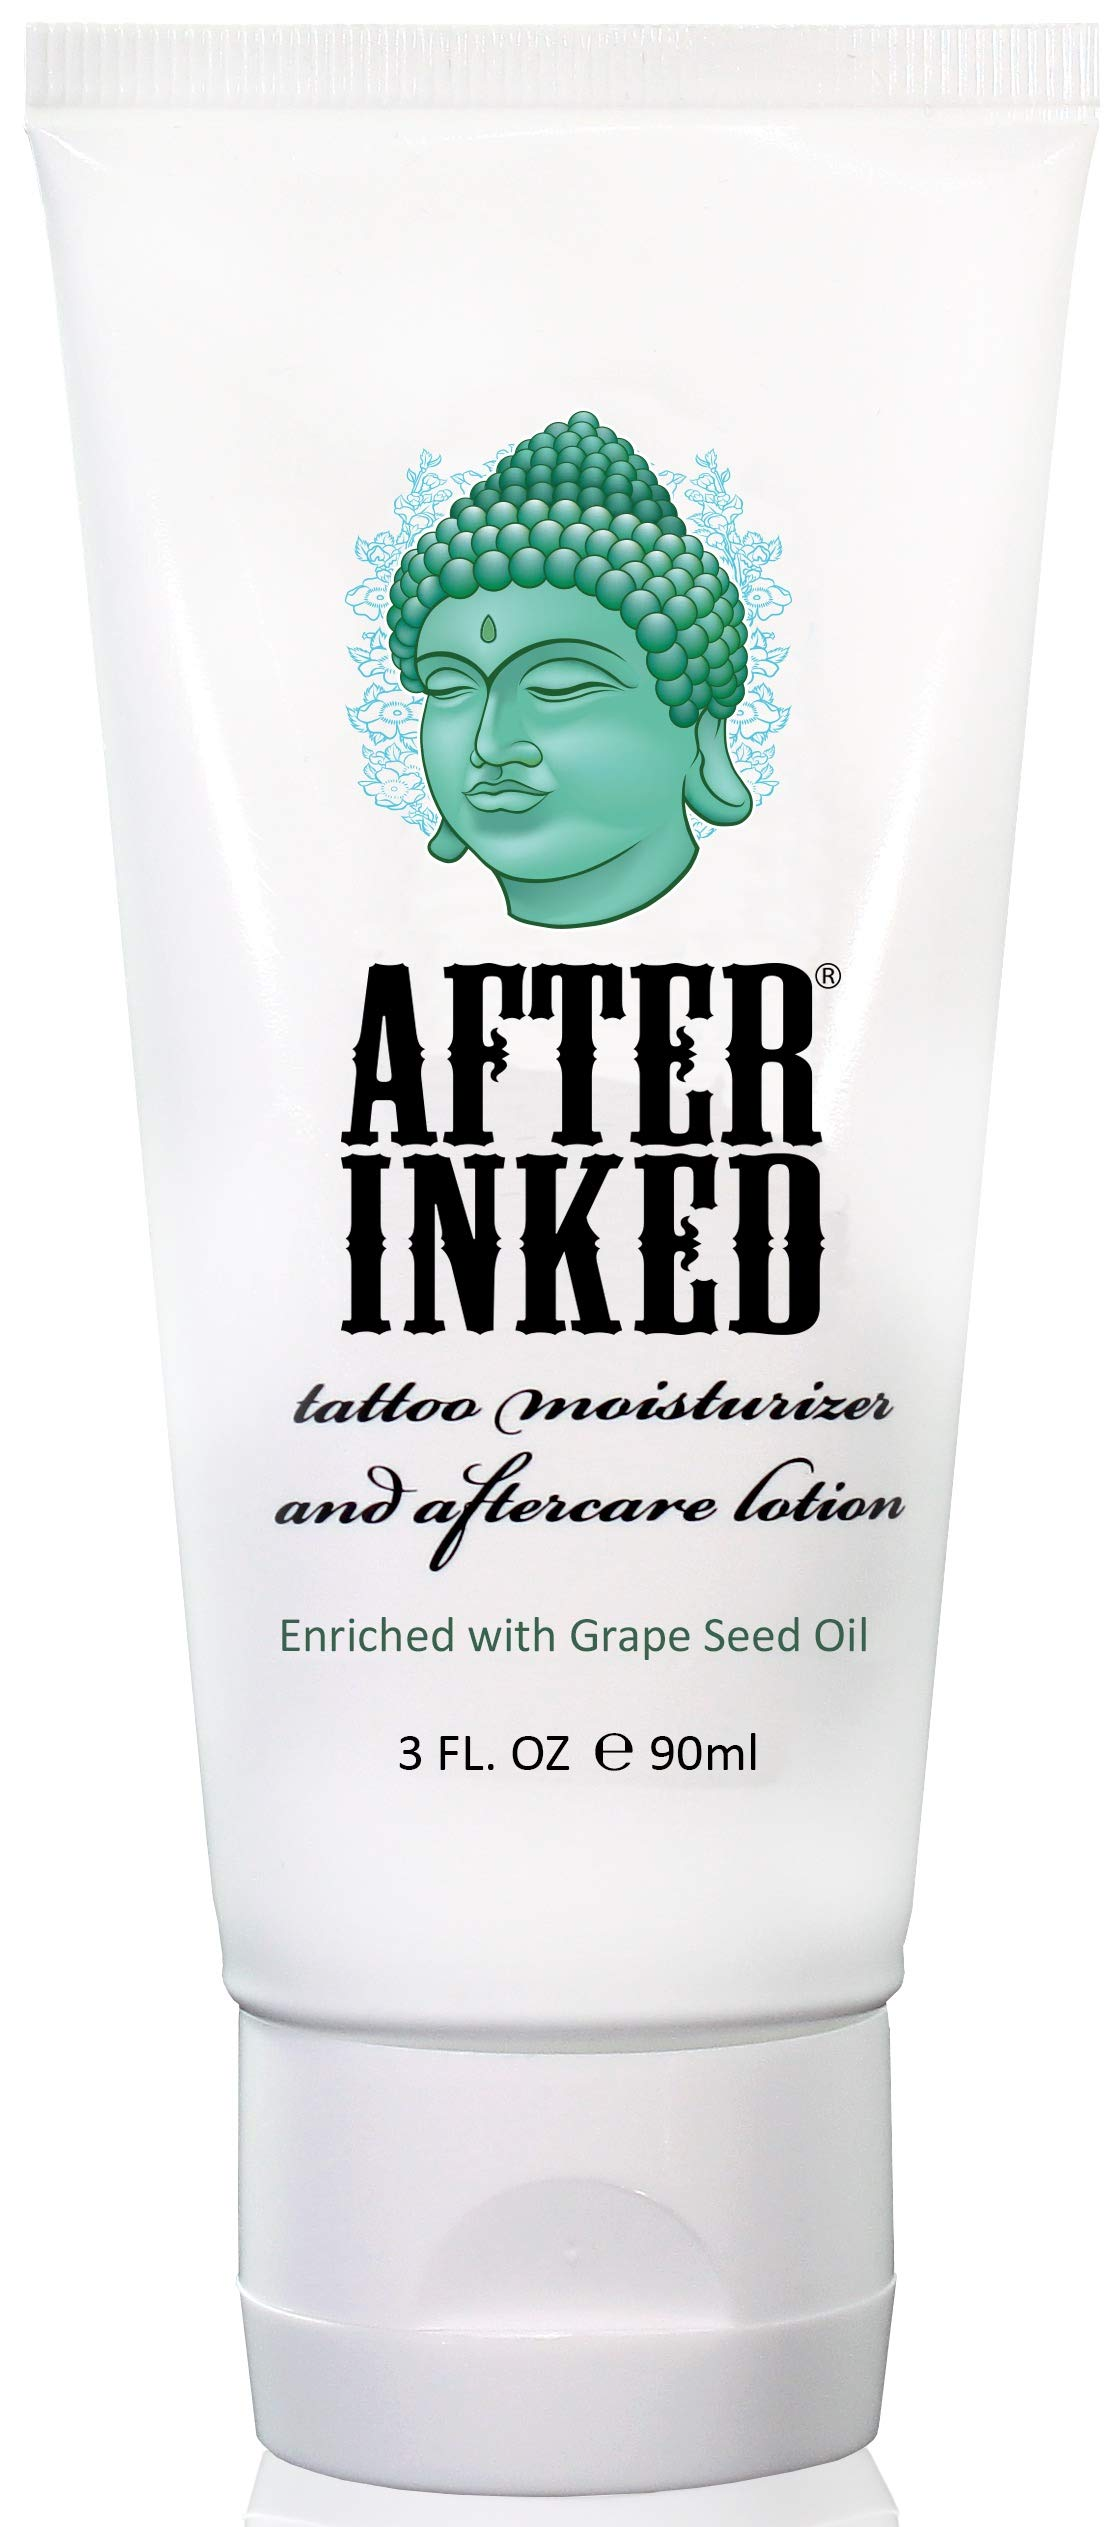 After Inked Tattoo Moisturizer & Aftercare Lotion 3oz Tube by After Inked